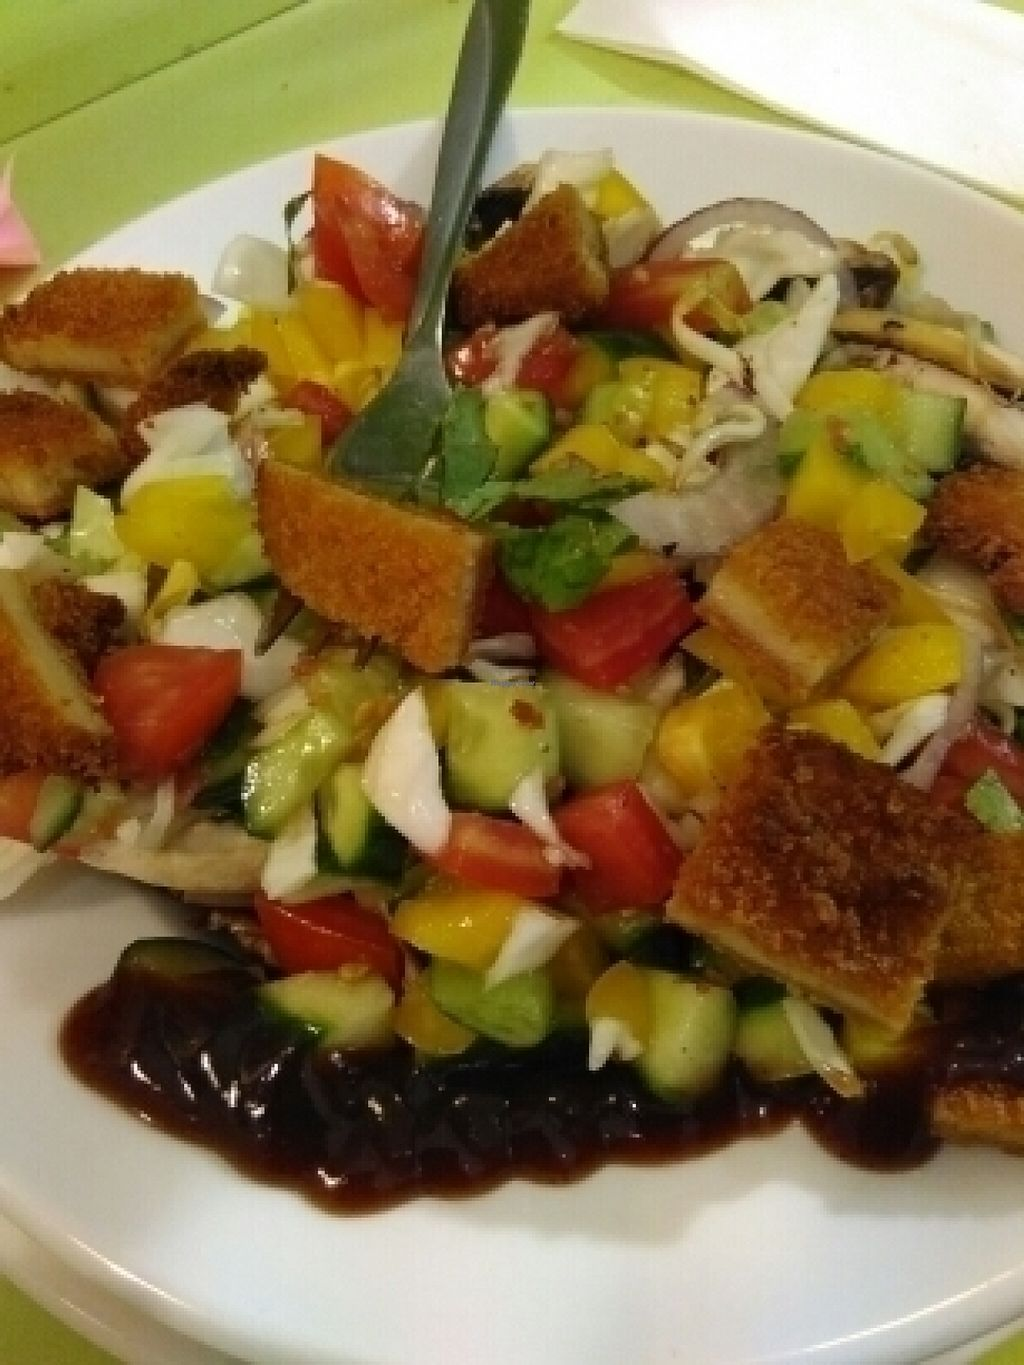 """Photo of The Vegetarian Shawarma  by <a href=""""/members/profile/L%C3%B6weDavid"""">LöweDavid</a> <br/>Seitan Salad <br/> July 17, 2016  - <a href='/contact/abuse/image/43214/160388'>Report</a>"""